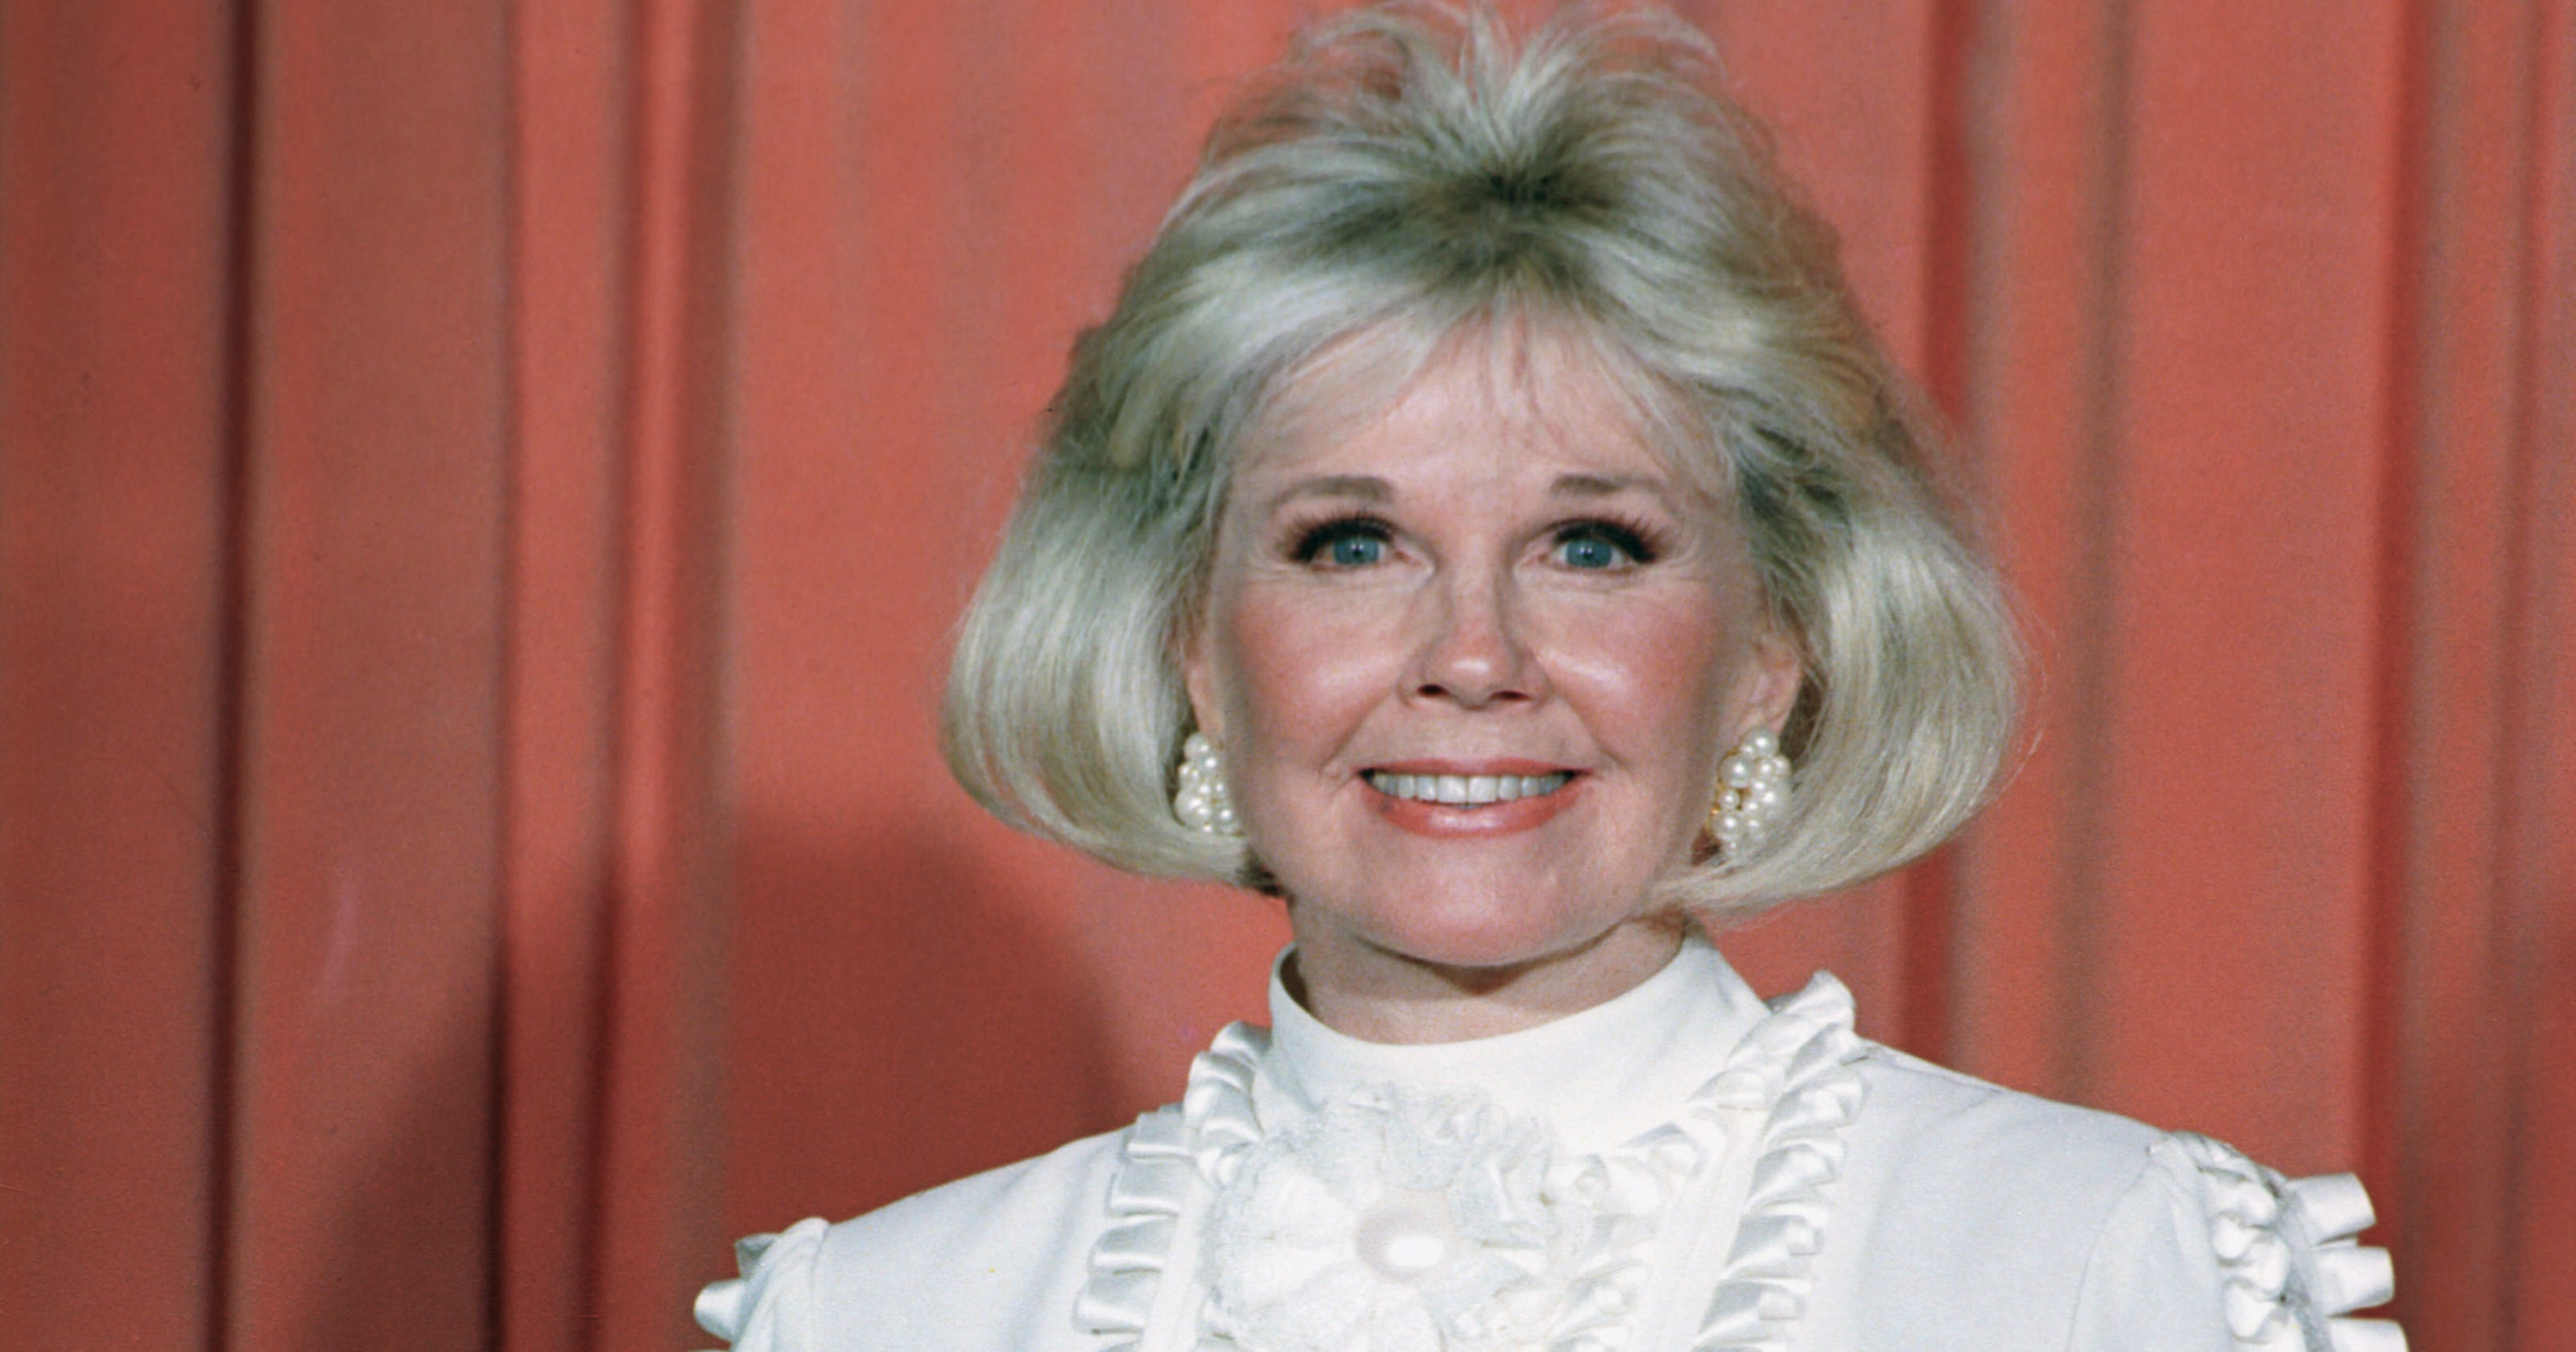 Doris Day dead at 97 after 'contracting a serious case of pneumonia'